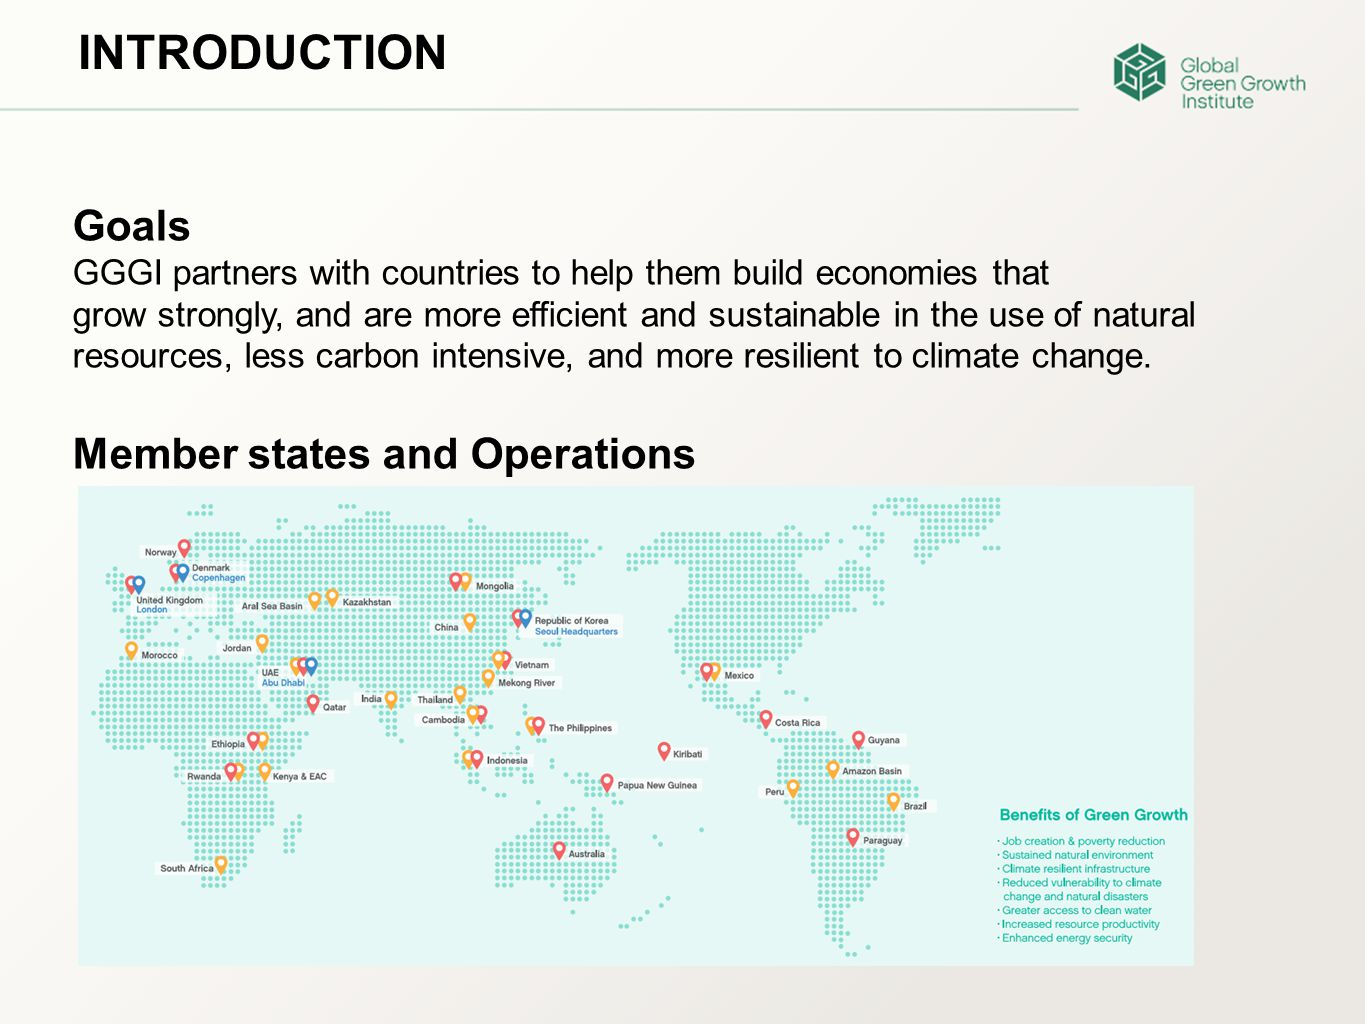 INTRODUCTION Goals GGGI partners with countries to help them build economies that grow strongly, and are more efficient and sustainable in the use of natural resources, less carbon intensive, and more resilient to climate change.